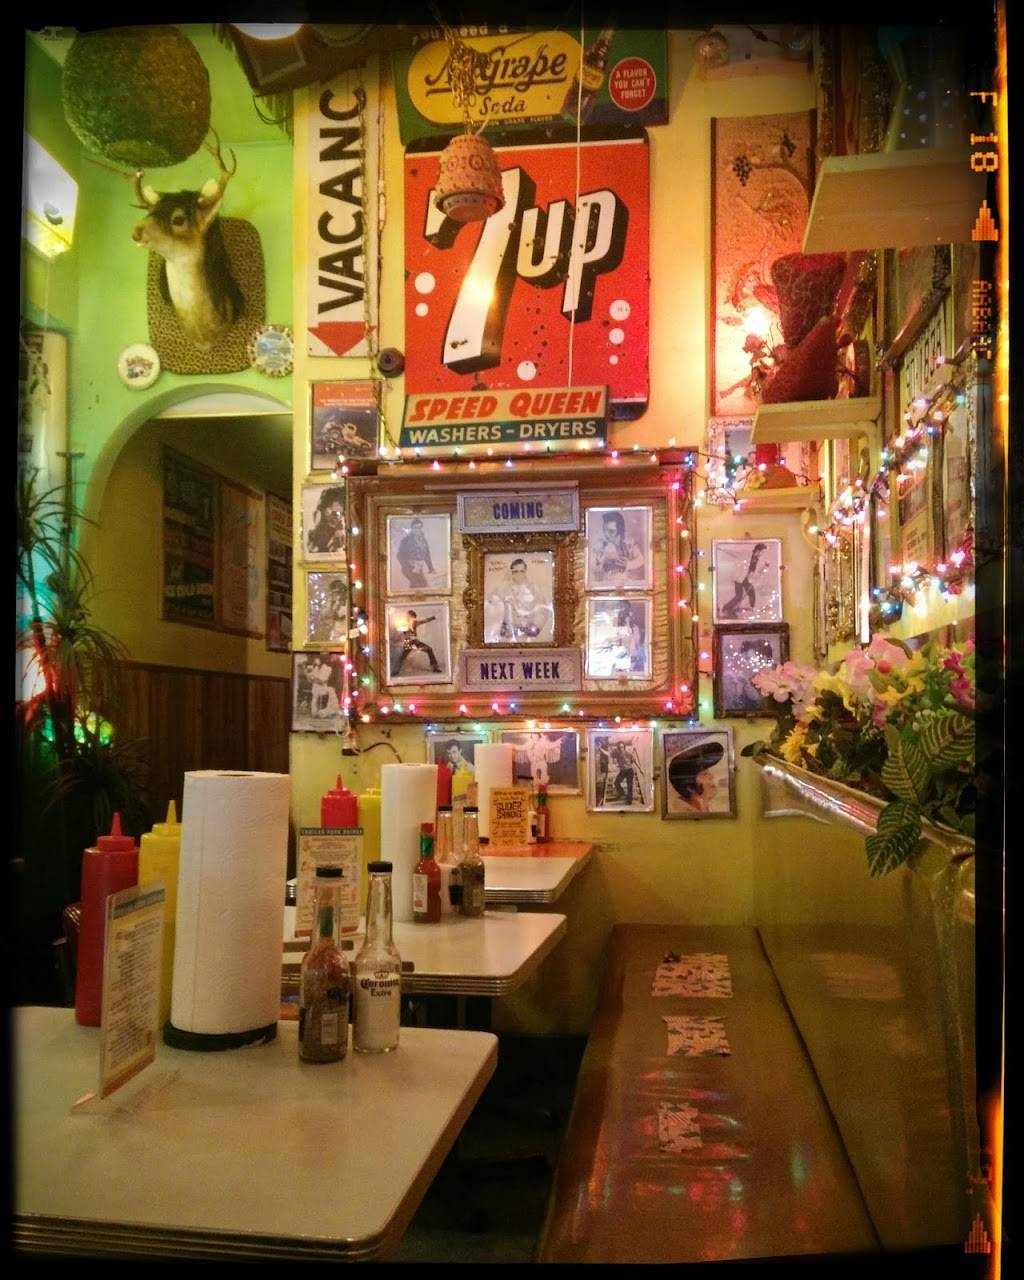 Trailer Park Lounge | night club | 271 W 23rd St, New York, NY 10011, USA | 2124638000 OR +1 212-463-8000